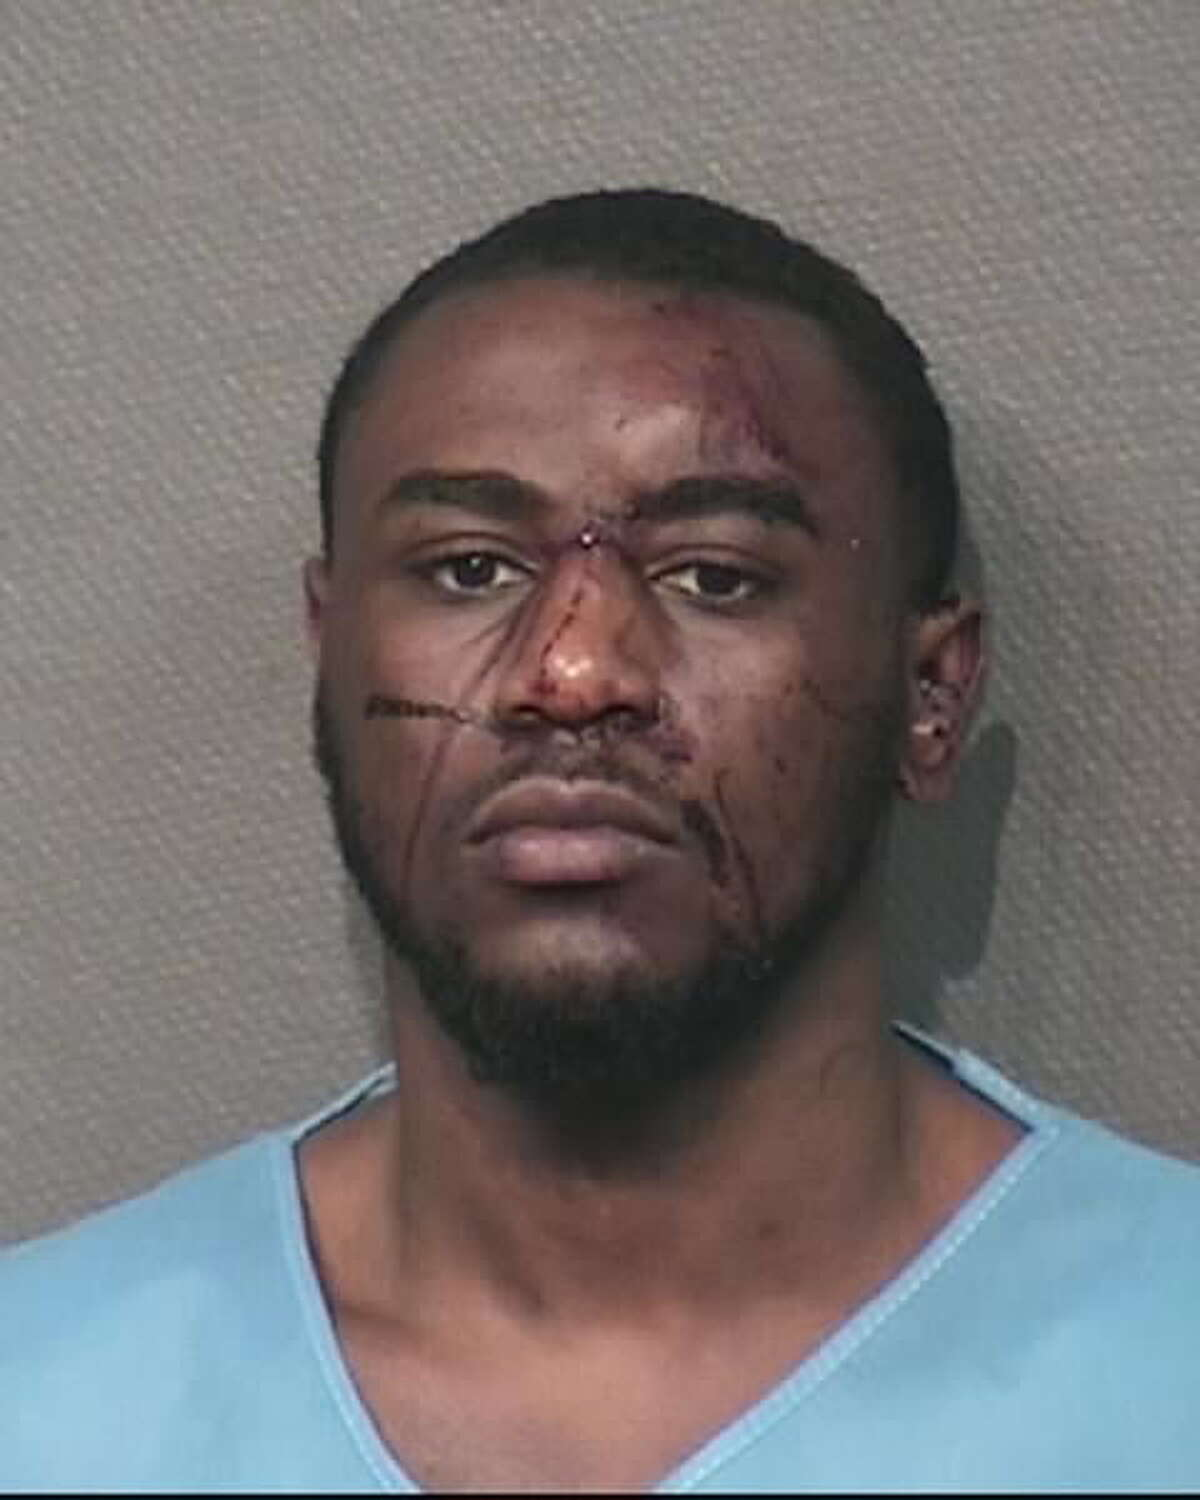 Jojuan Brown Charges: Manufacture or delivery of a controlled substance